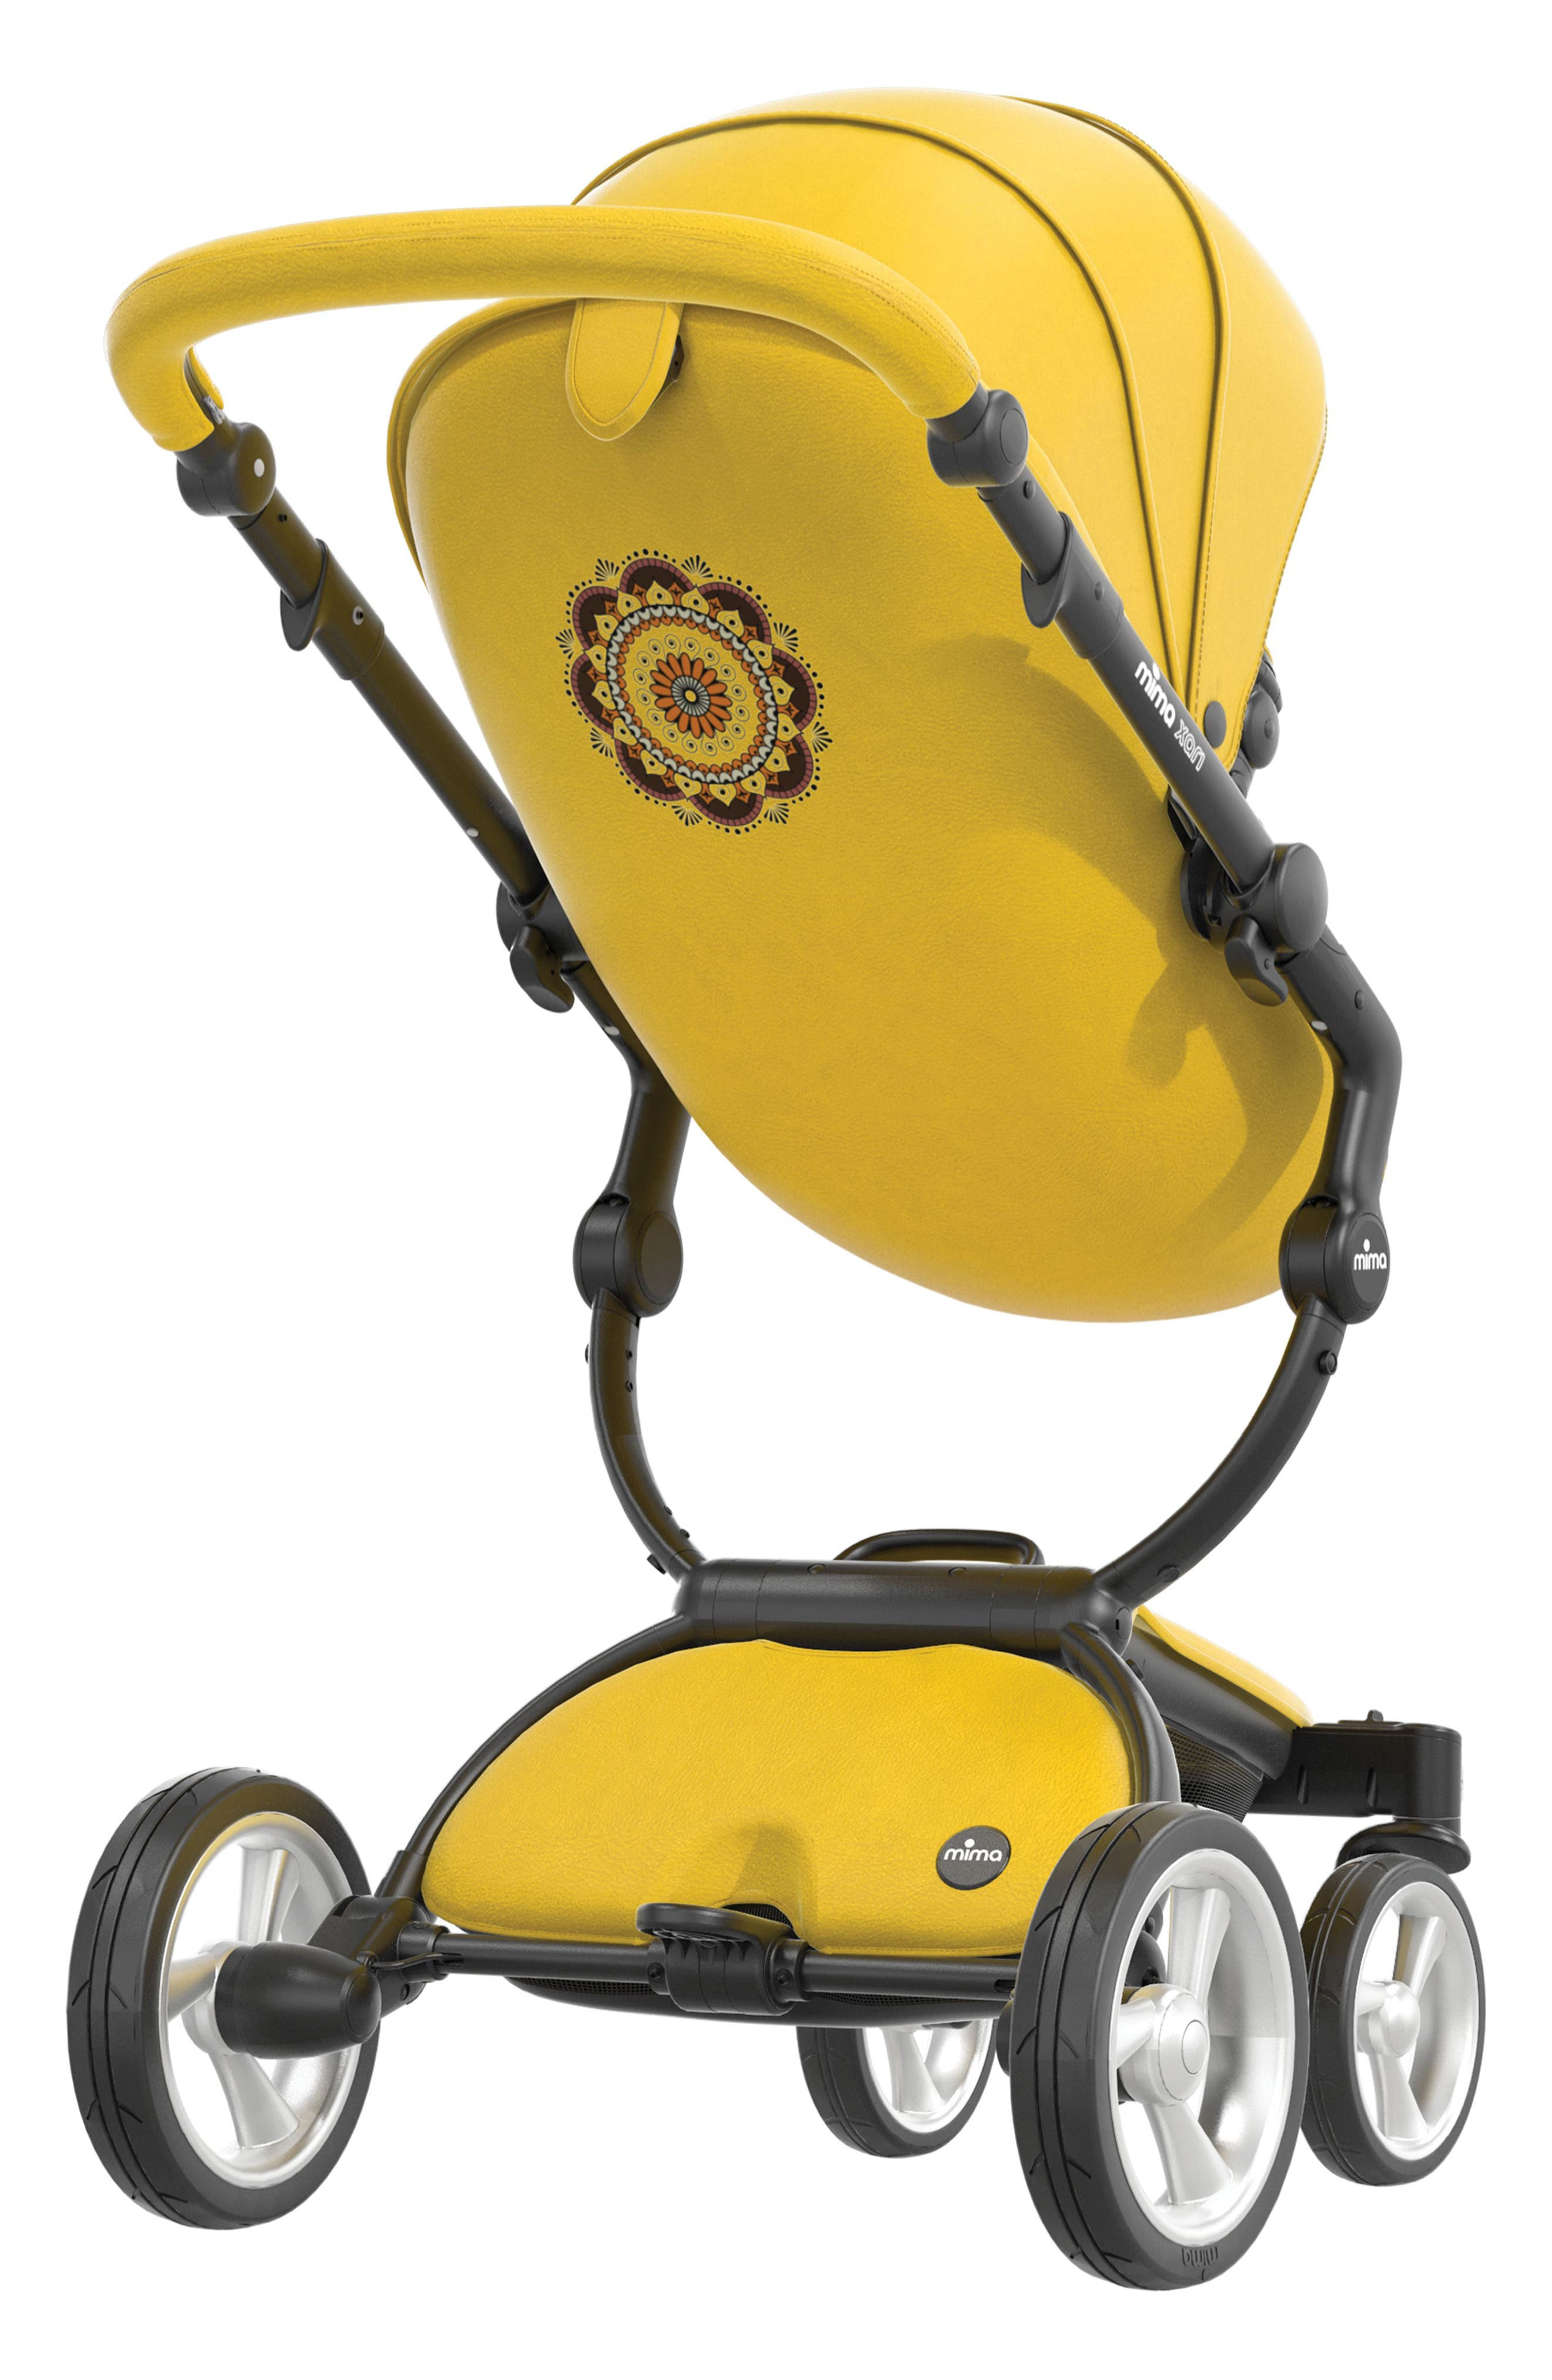 Xari Special Edition Chassis Stroller with Seat, Carrycot & Accessories,                             Alternate thumbnail 2, color,                             SPECIAL EDITION YELLOW